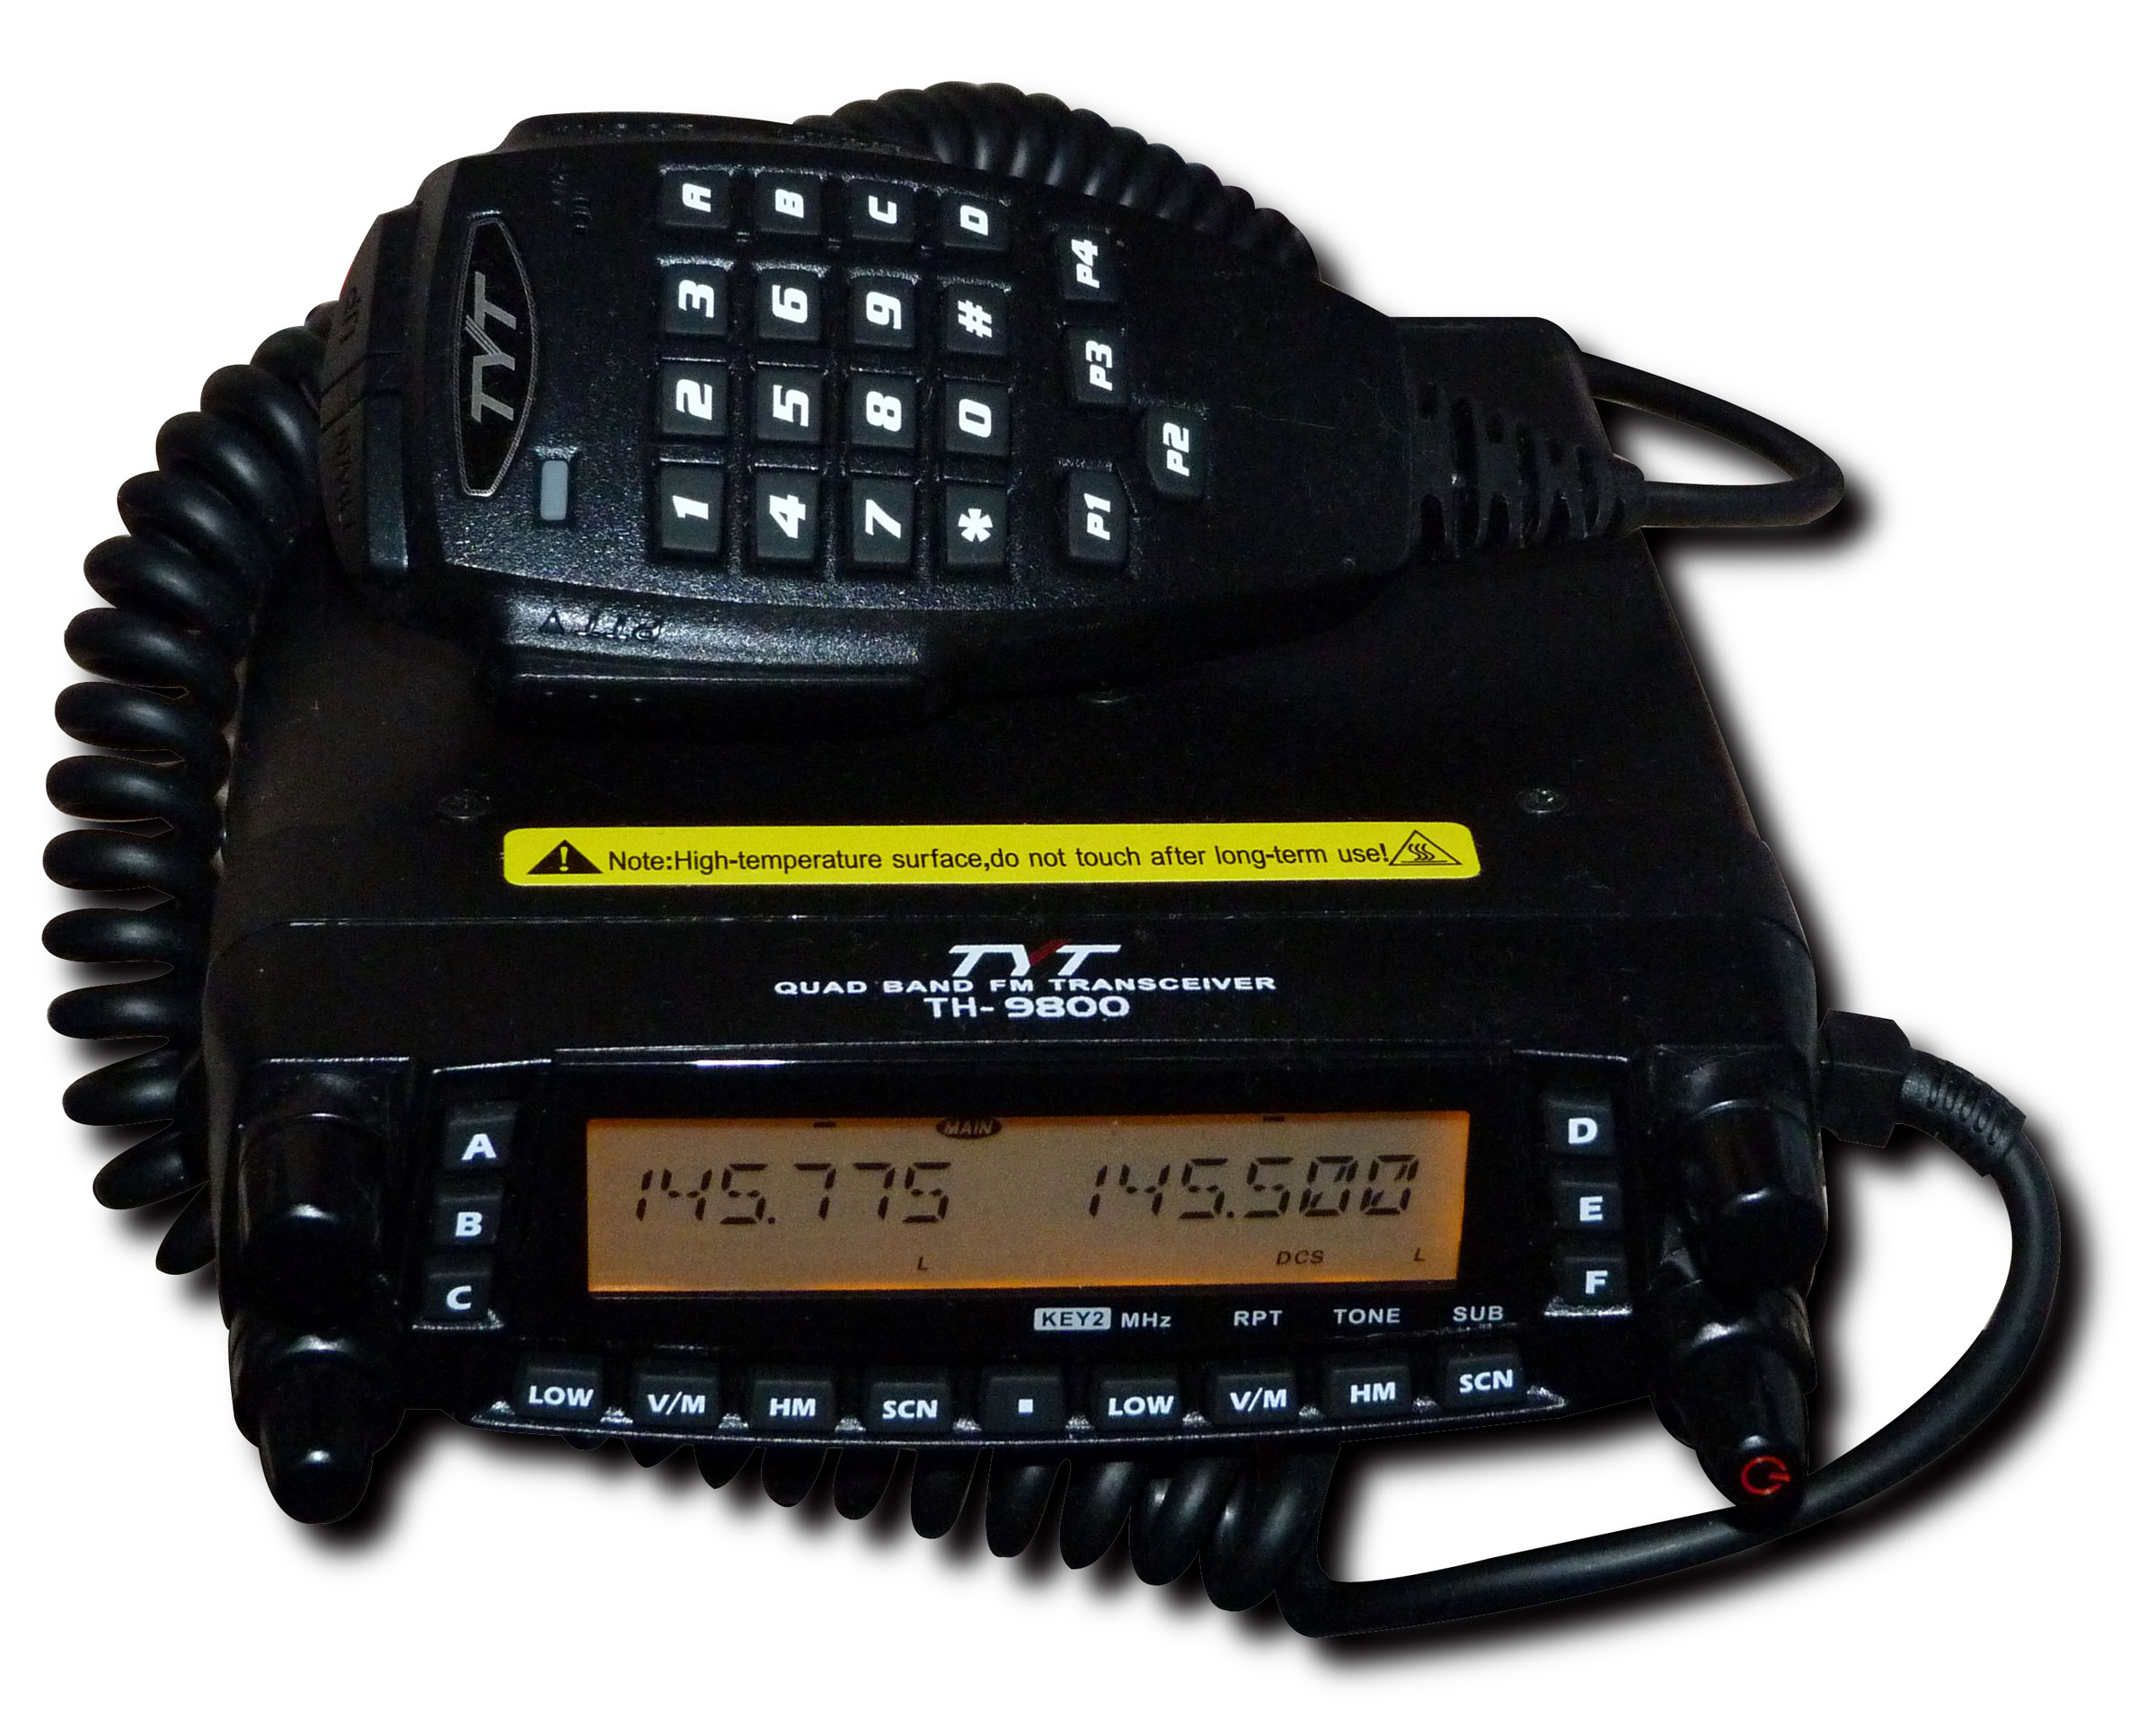 "TYT TH-9800 ""PLUS"" Quad band 10m/4m/2m/70cm Mobile Transceiver"